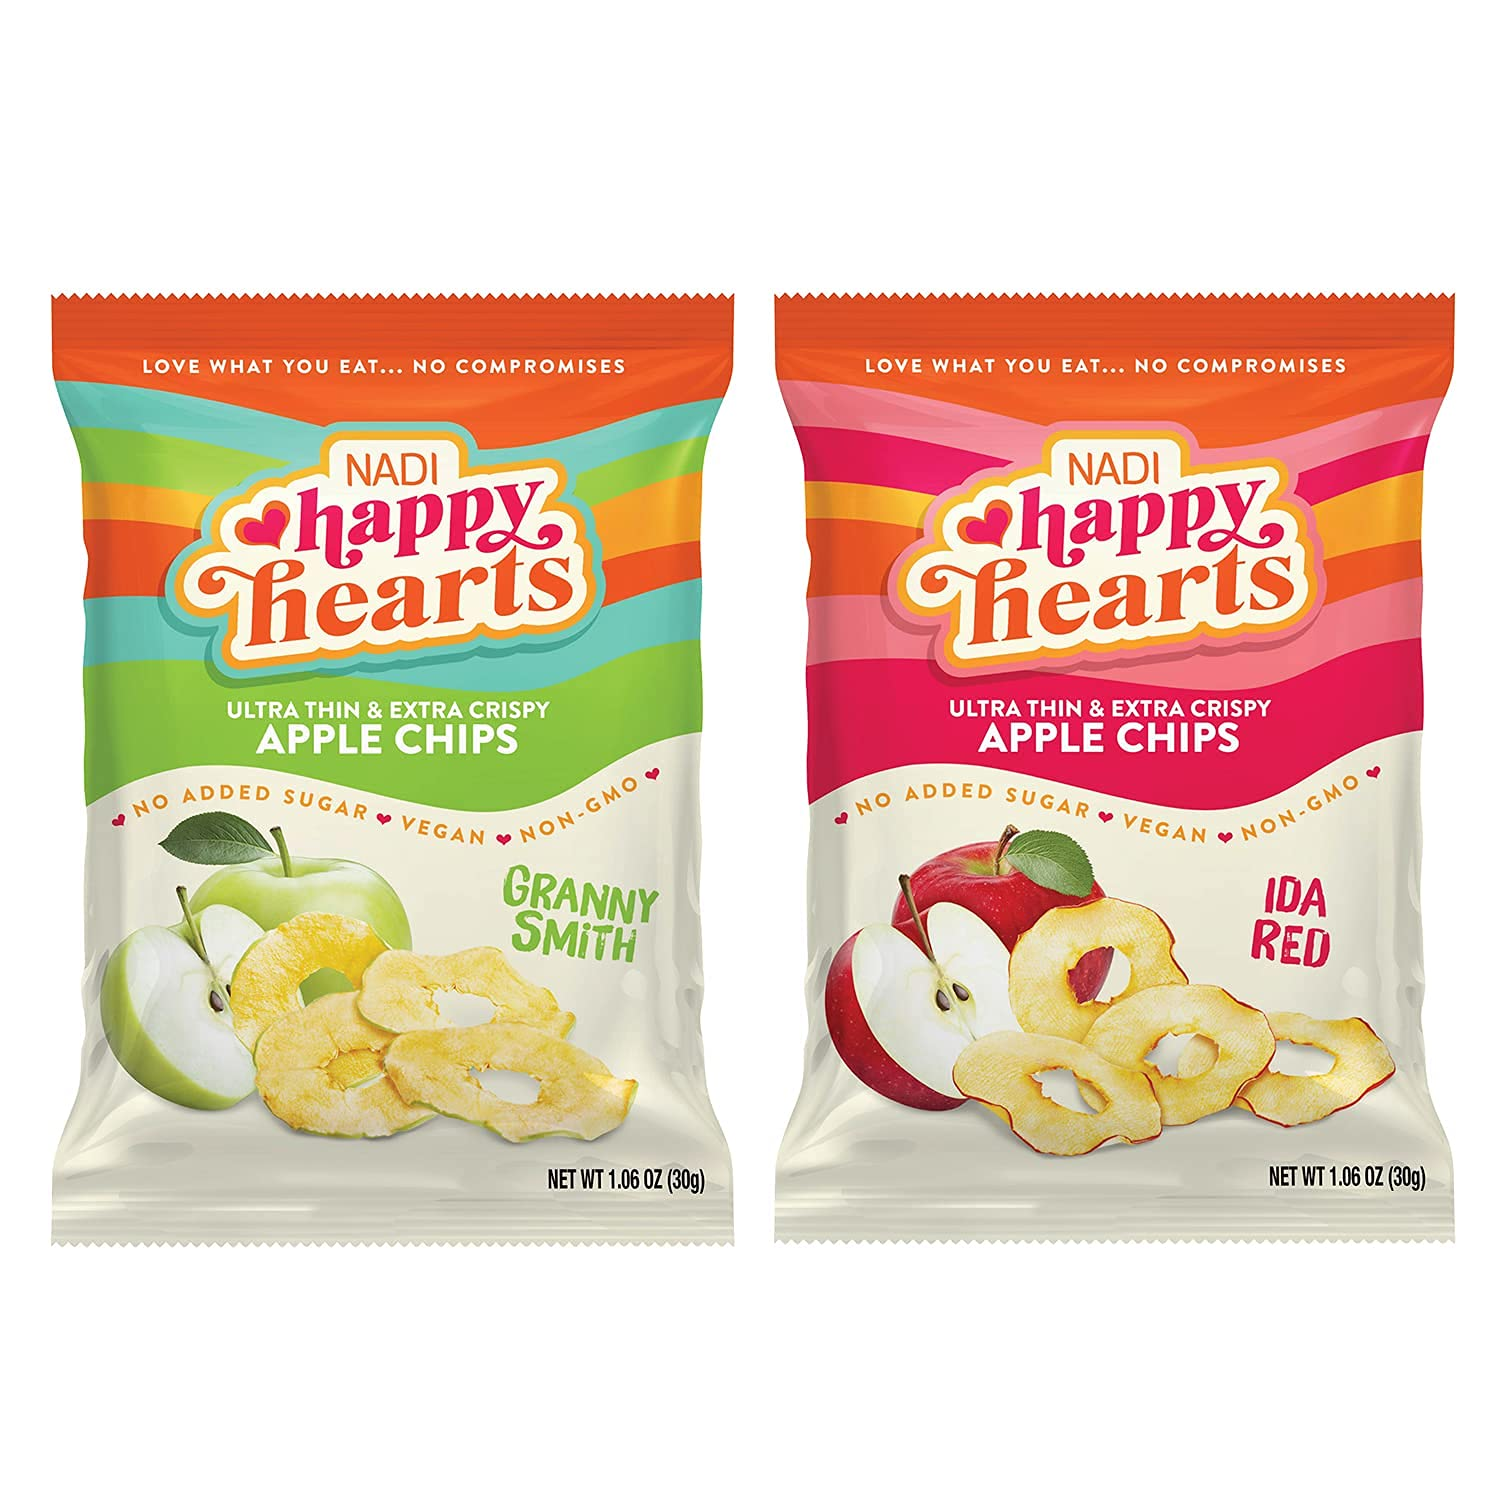 NADI - Healthy Hearts Apple Chips - Variety Pack (Pack of 6) | Extra Crispy, Crunchy, Thin Dried Apple Slices | Gluten Free, Non-GMO, Vegan, Keto, Paleo, Fat Free (3ea of Granny Smith and 3ea Ida Red)